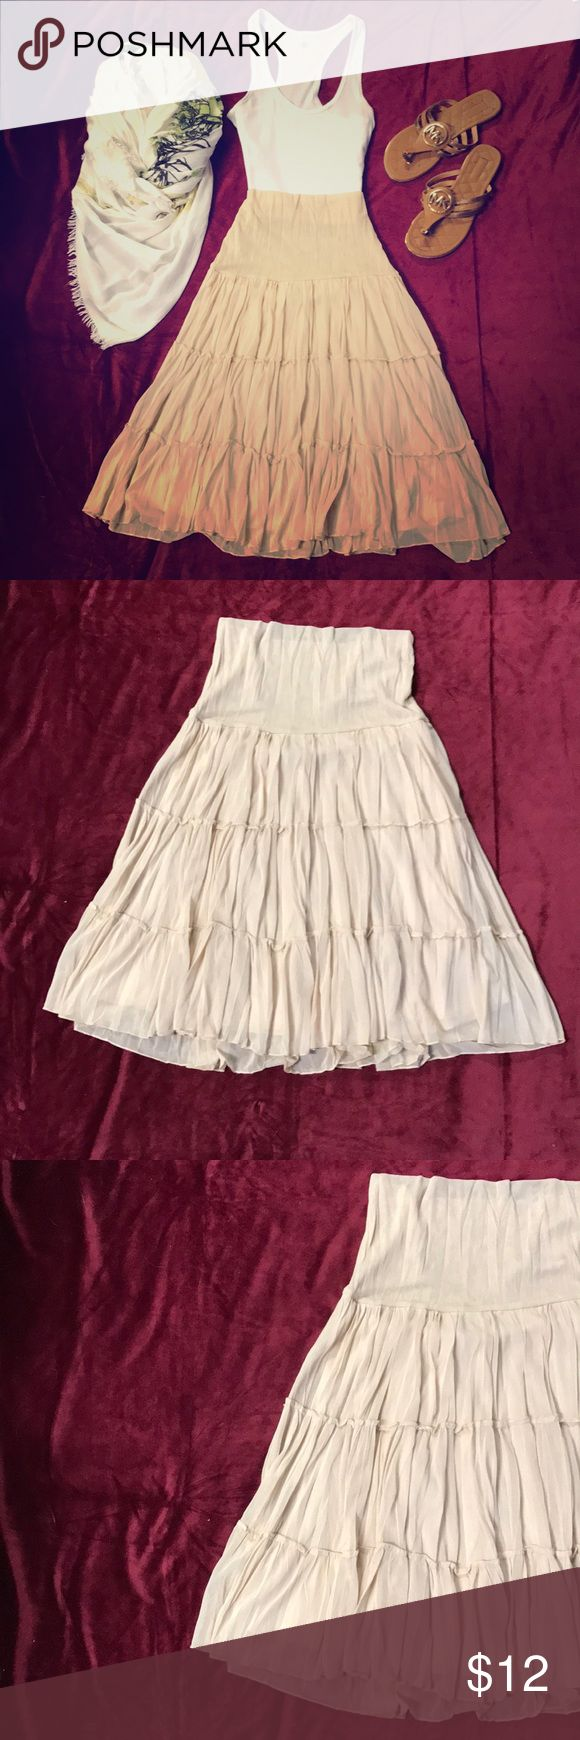 **IZ BYER CALIFORNIA** Tiered Gauze A-Line Skirt **IZ BYER CALIFORNIA** Tiered gauze a-Line skirt with lining. Never worn but no tags. Beautiful condition. Perfect for summer or fall! Iz Byer Skirts A-Line or Full